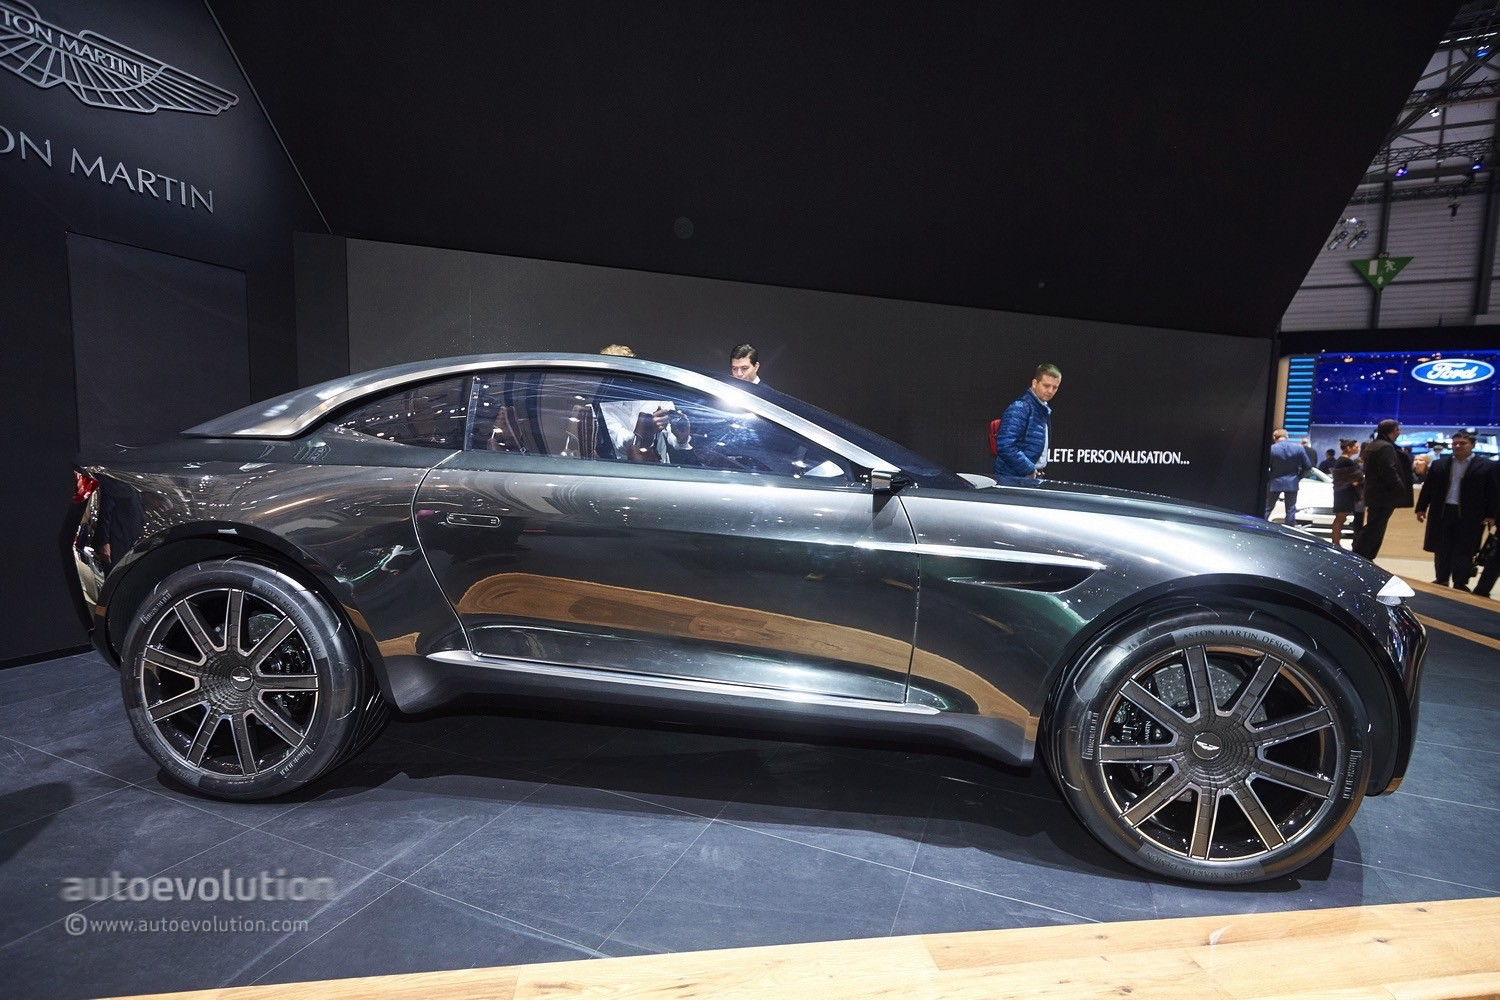 Aston Martin Ceo Says Mercedes Suv Platforms Aren T Sporty Enough For Dbz on vanquish aston martin 2017